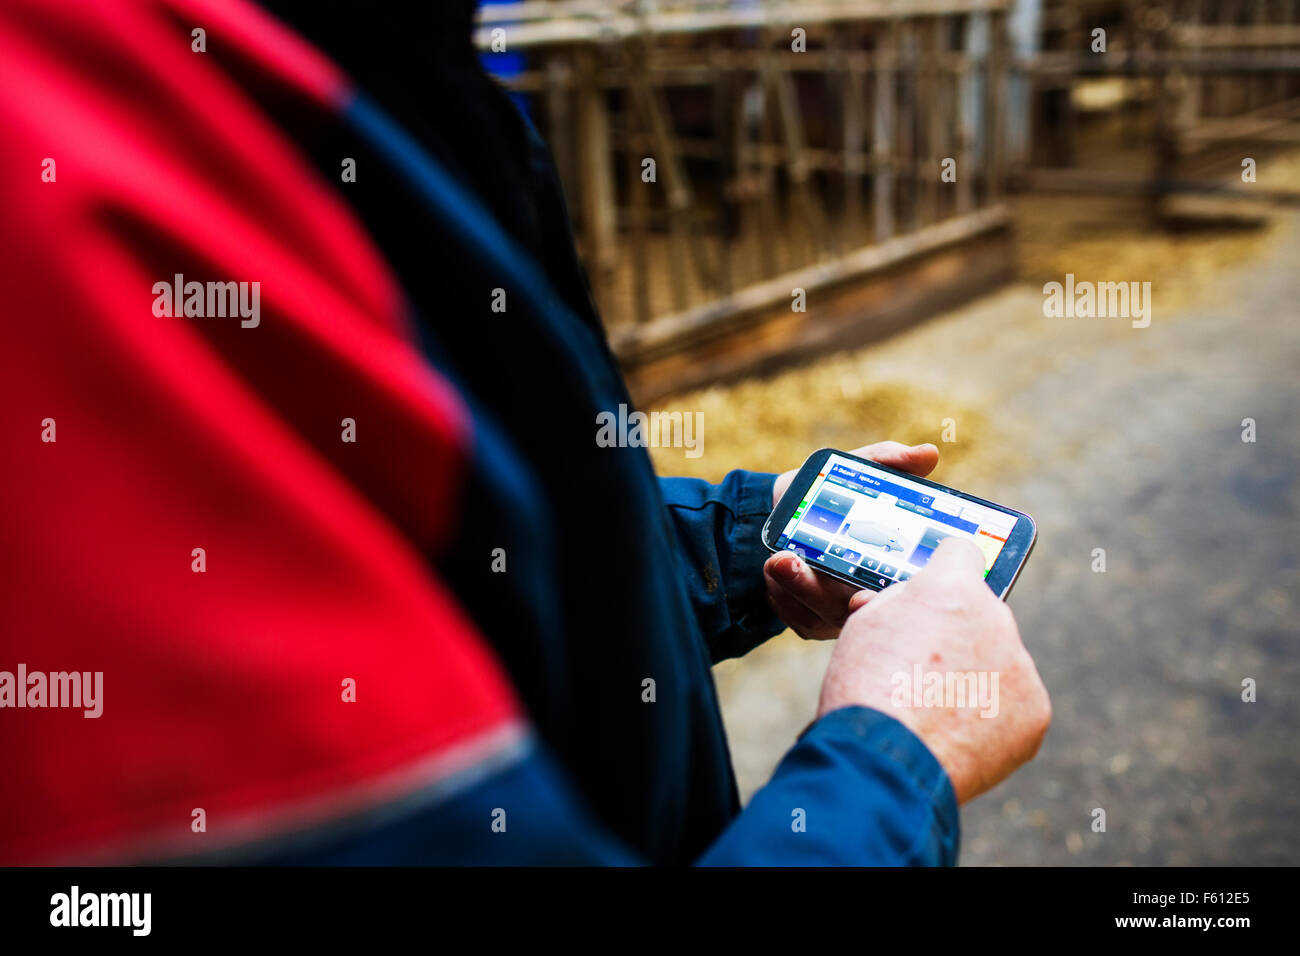 La main de l'utilisation de smart phone à dairy farm Photo Stock